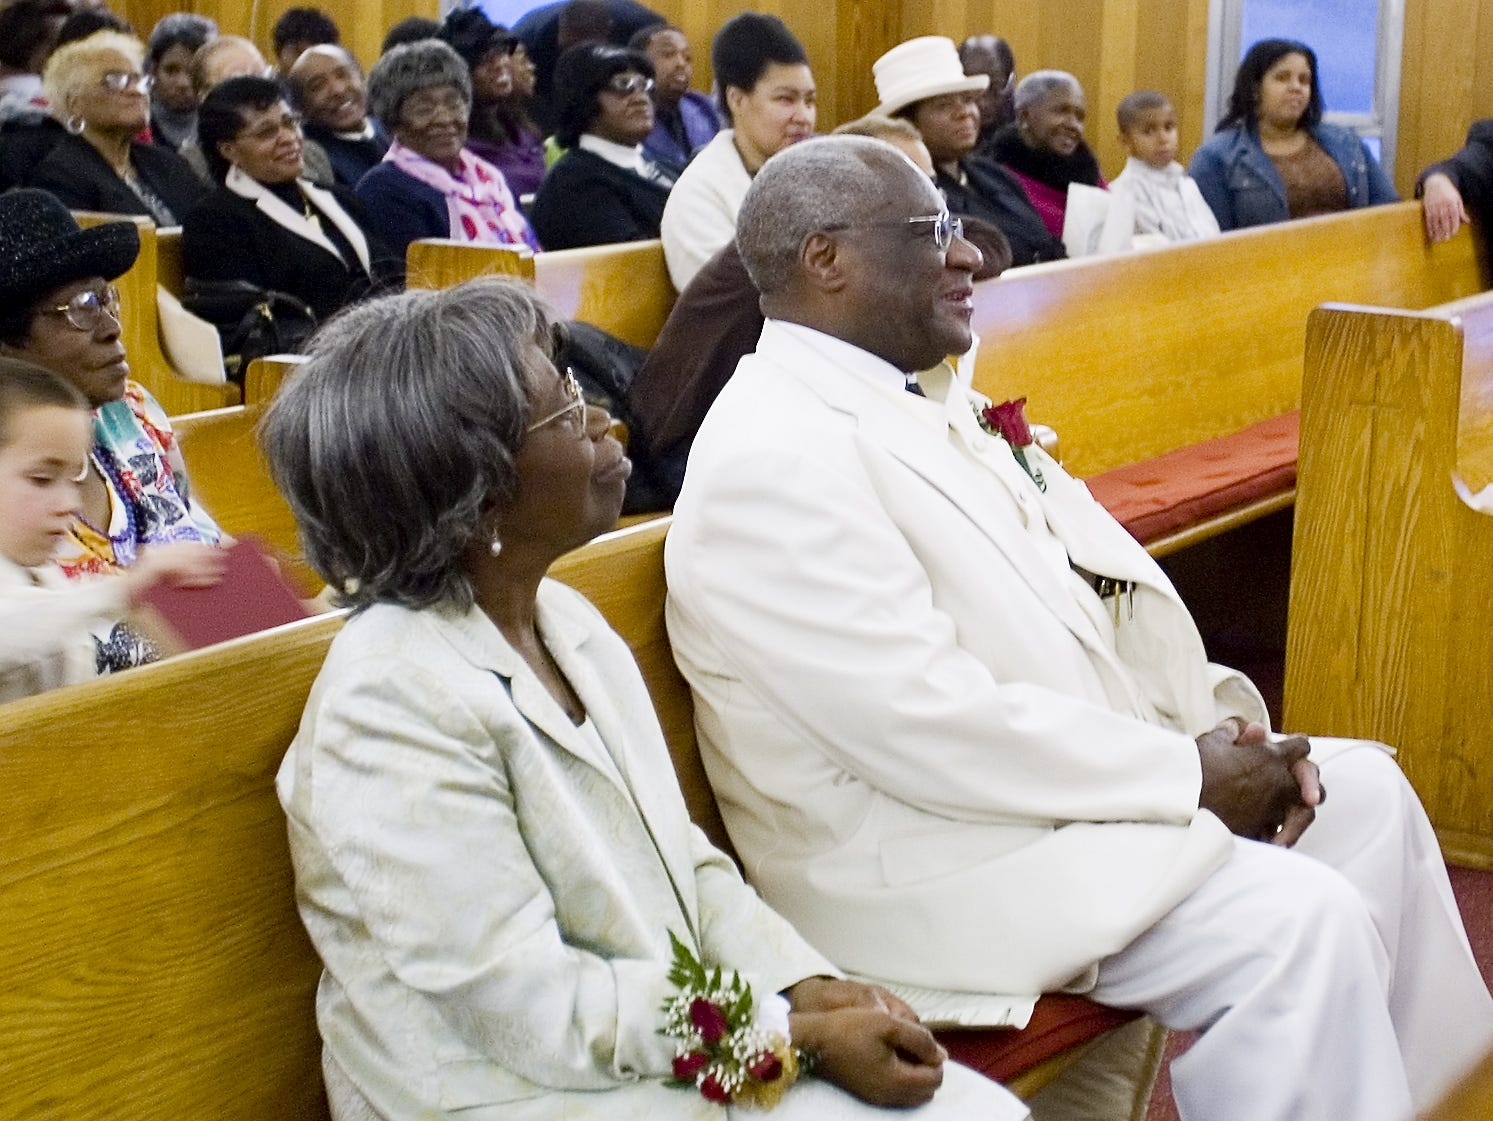 The Rev. Cephus McGee and his wife, Verlene, listen as speakers praise his 45 years of service at the All Saints  Home Church of God in Christ in Elmira in 2006.